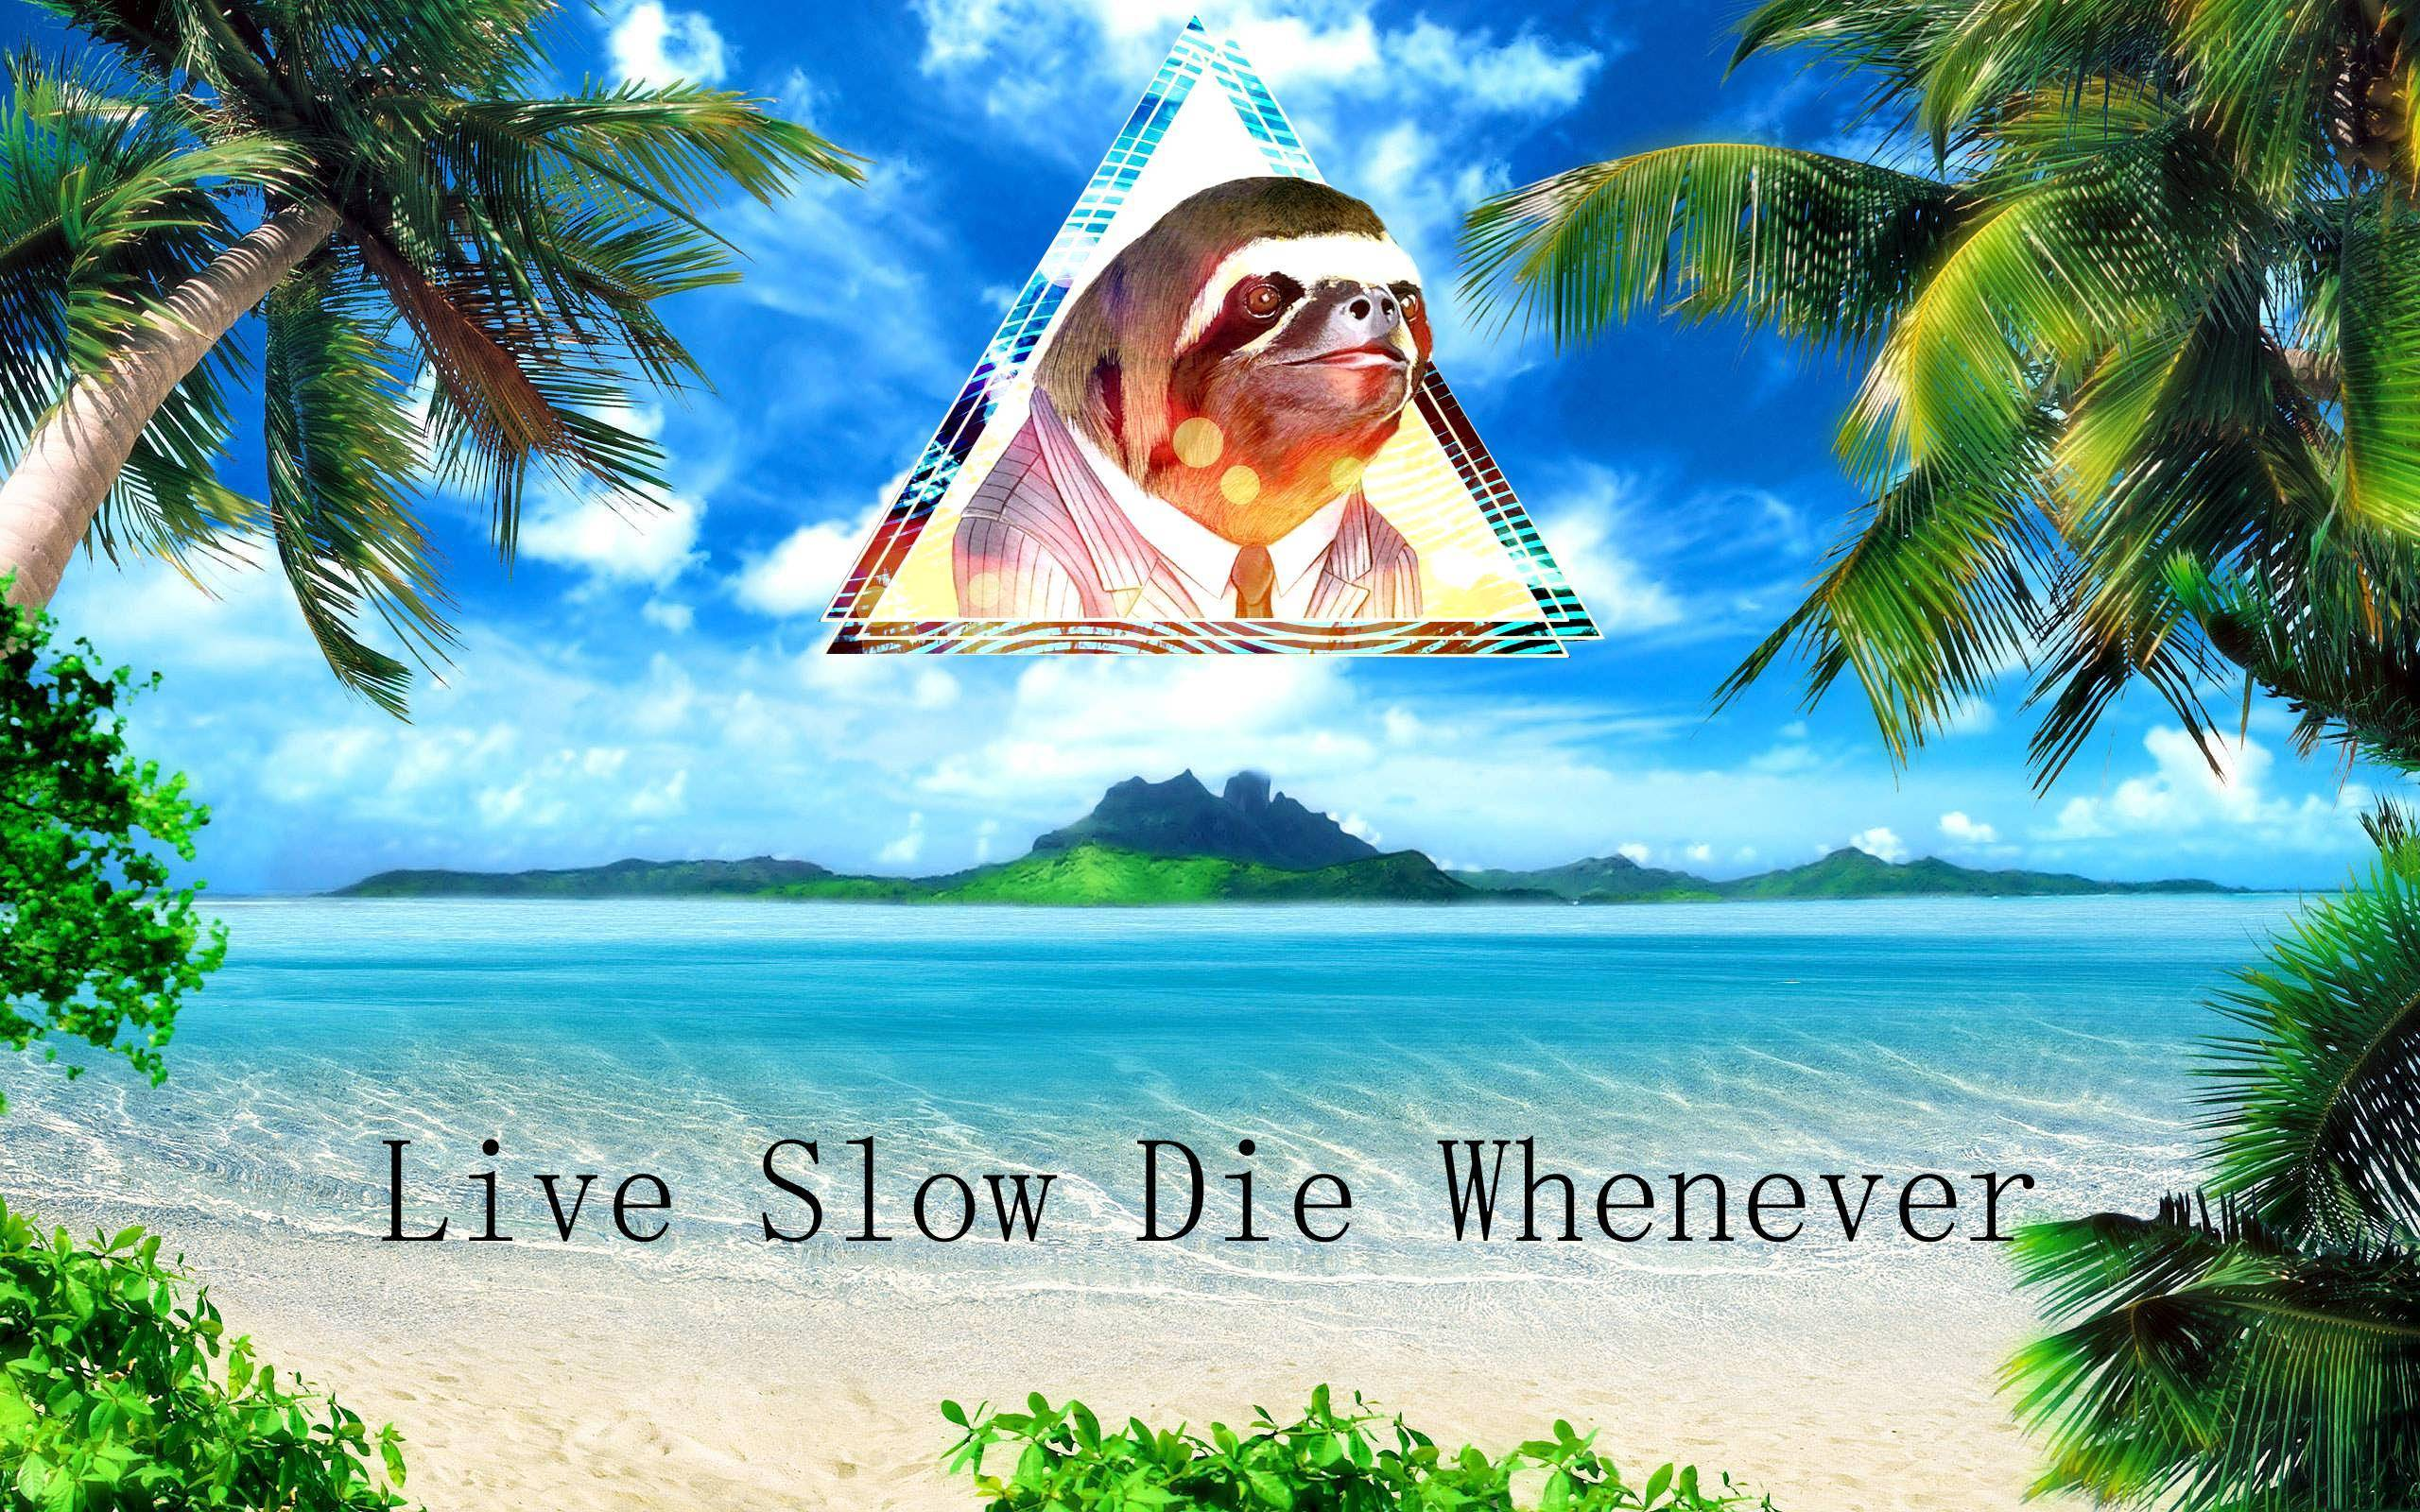 Live Slow, Die Whenever. : sloths